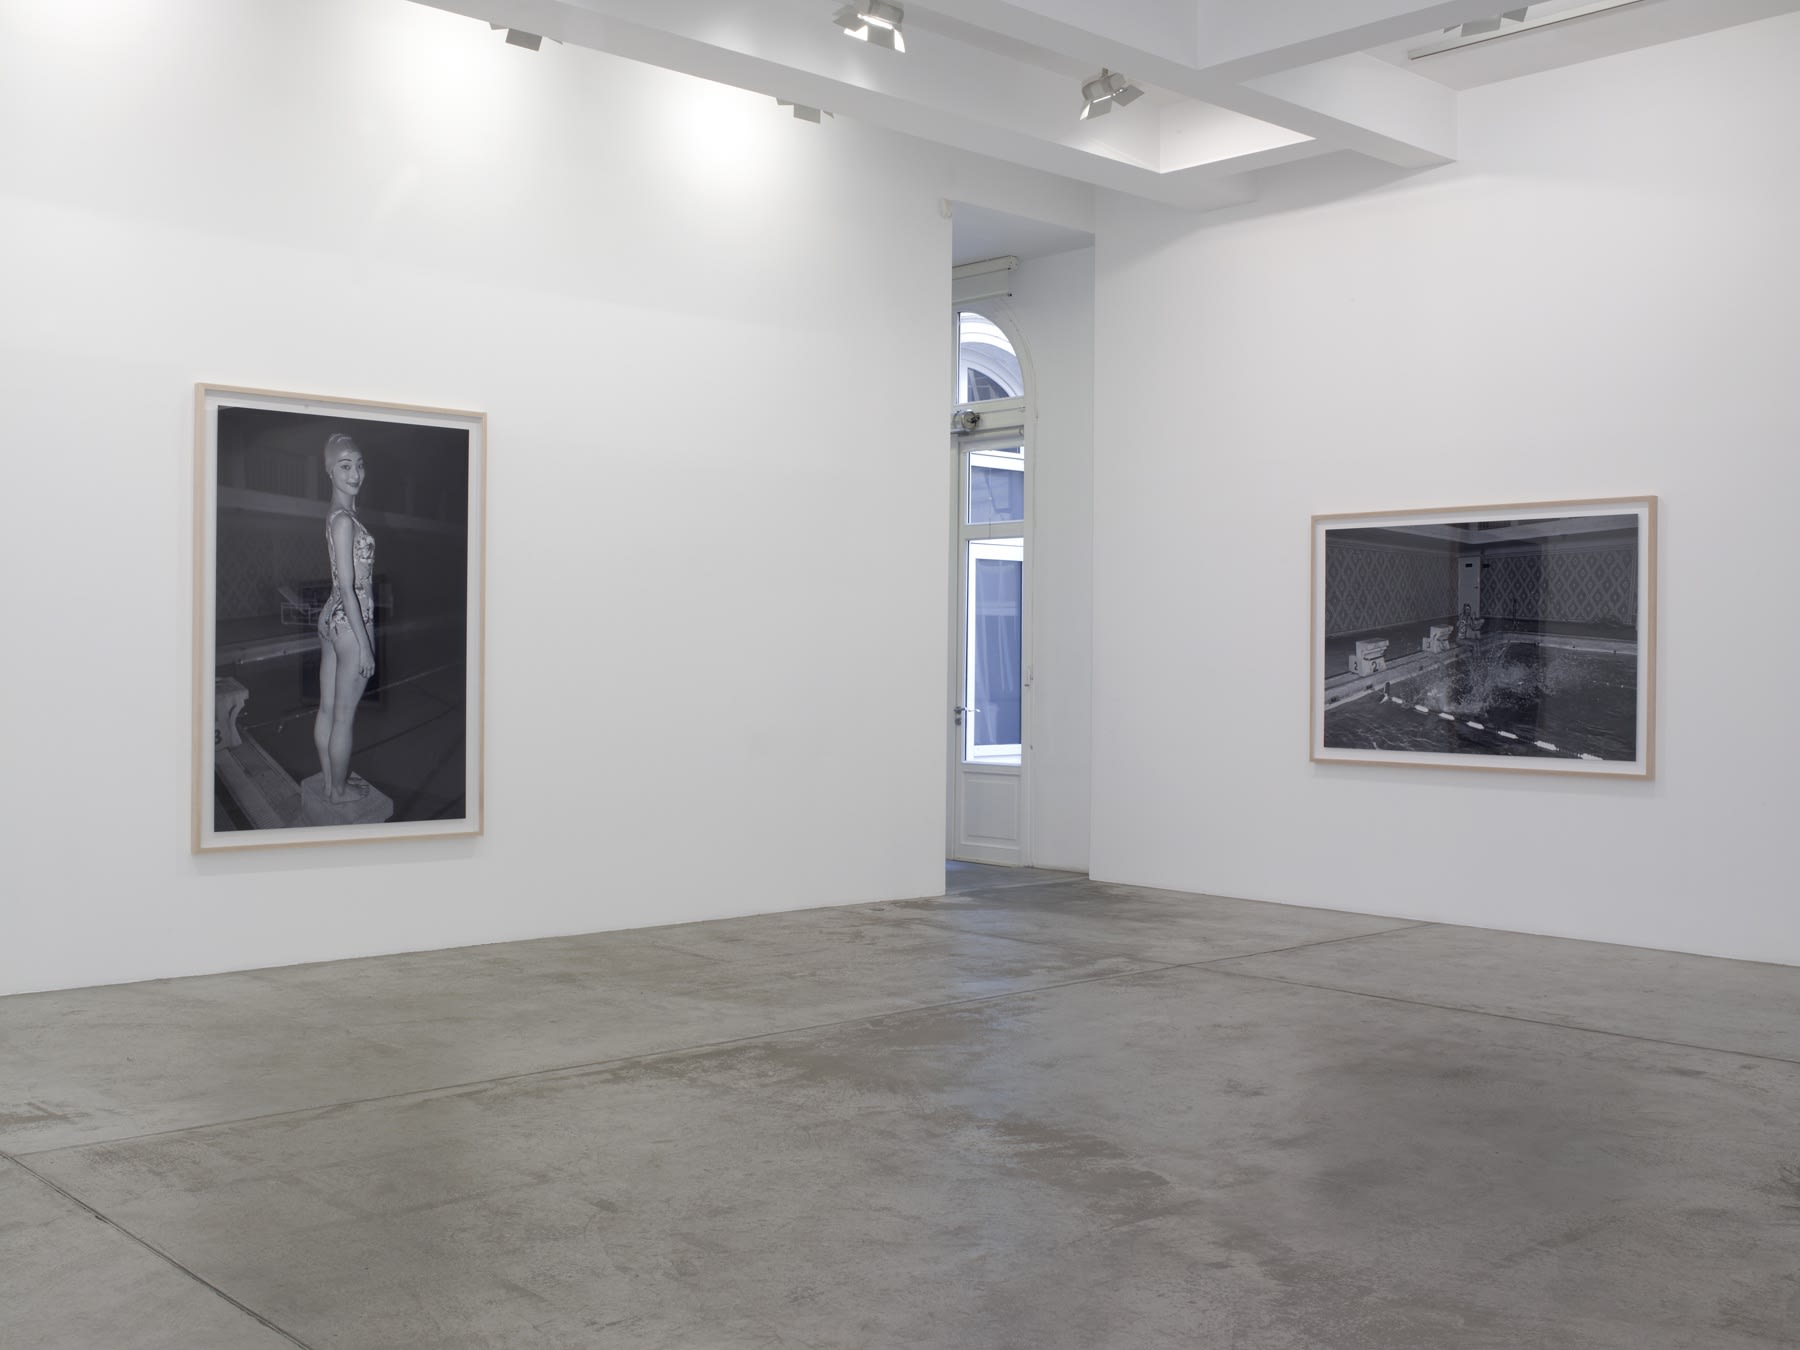 Two framed black and white photographs hanging in the corner of the room, one of a woman in a diving cap at an indoor pool, and the second of water splashing after a dive.